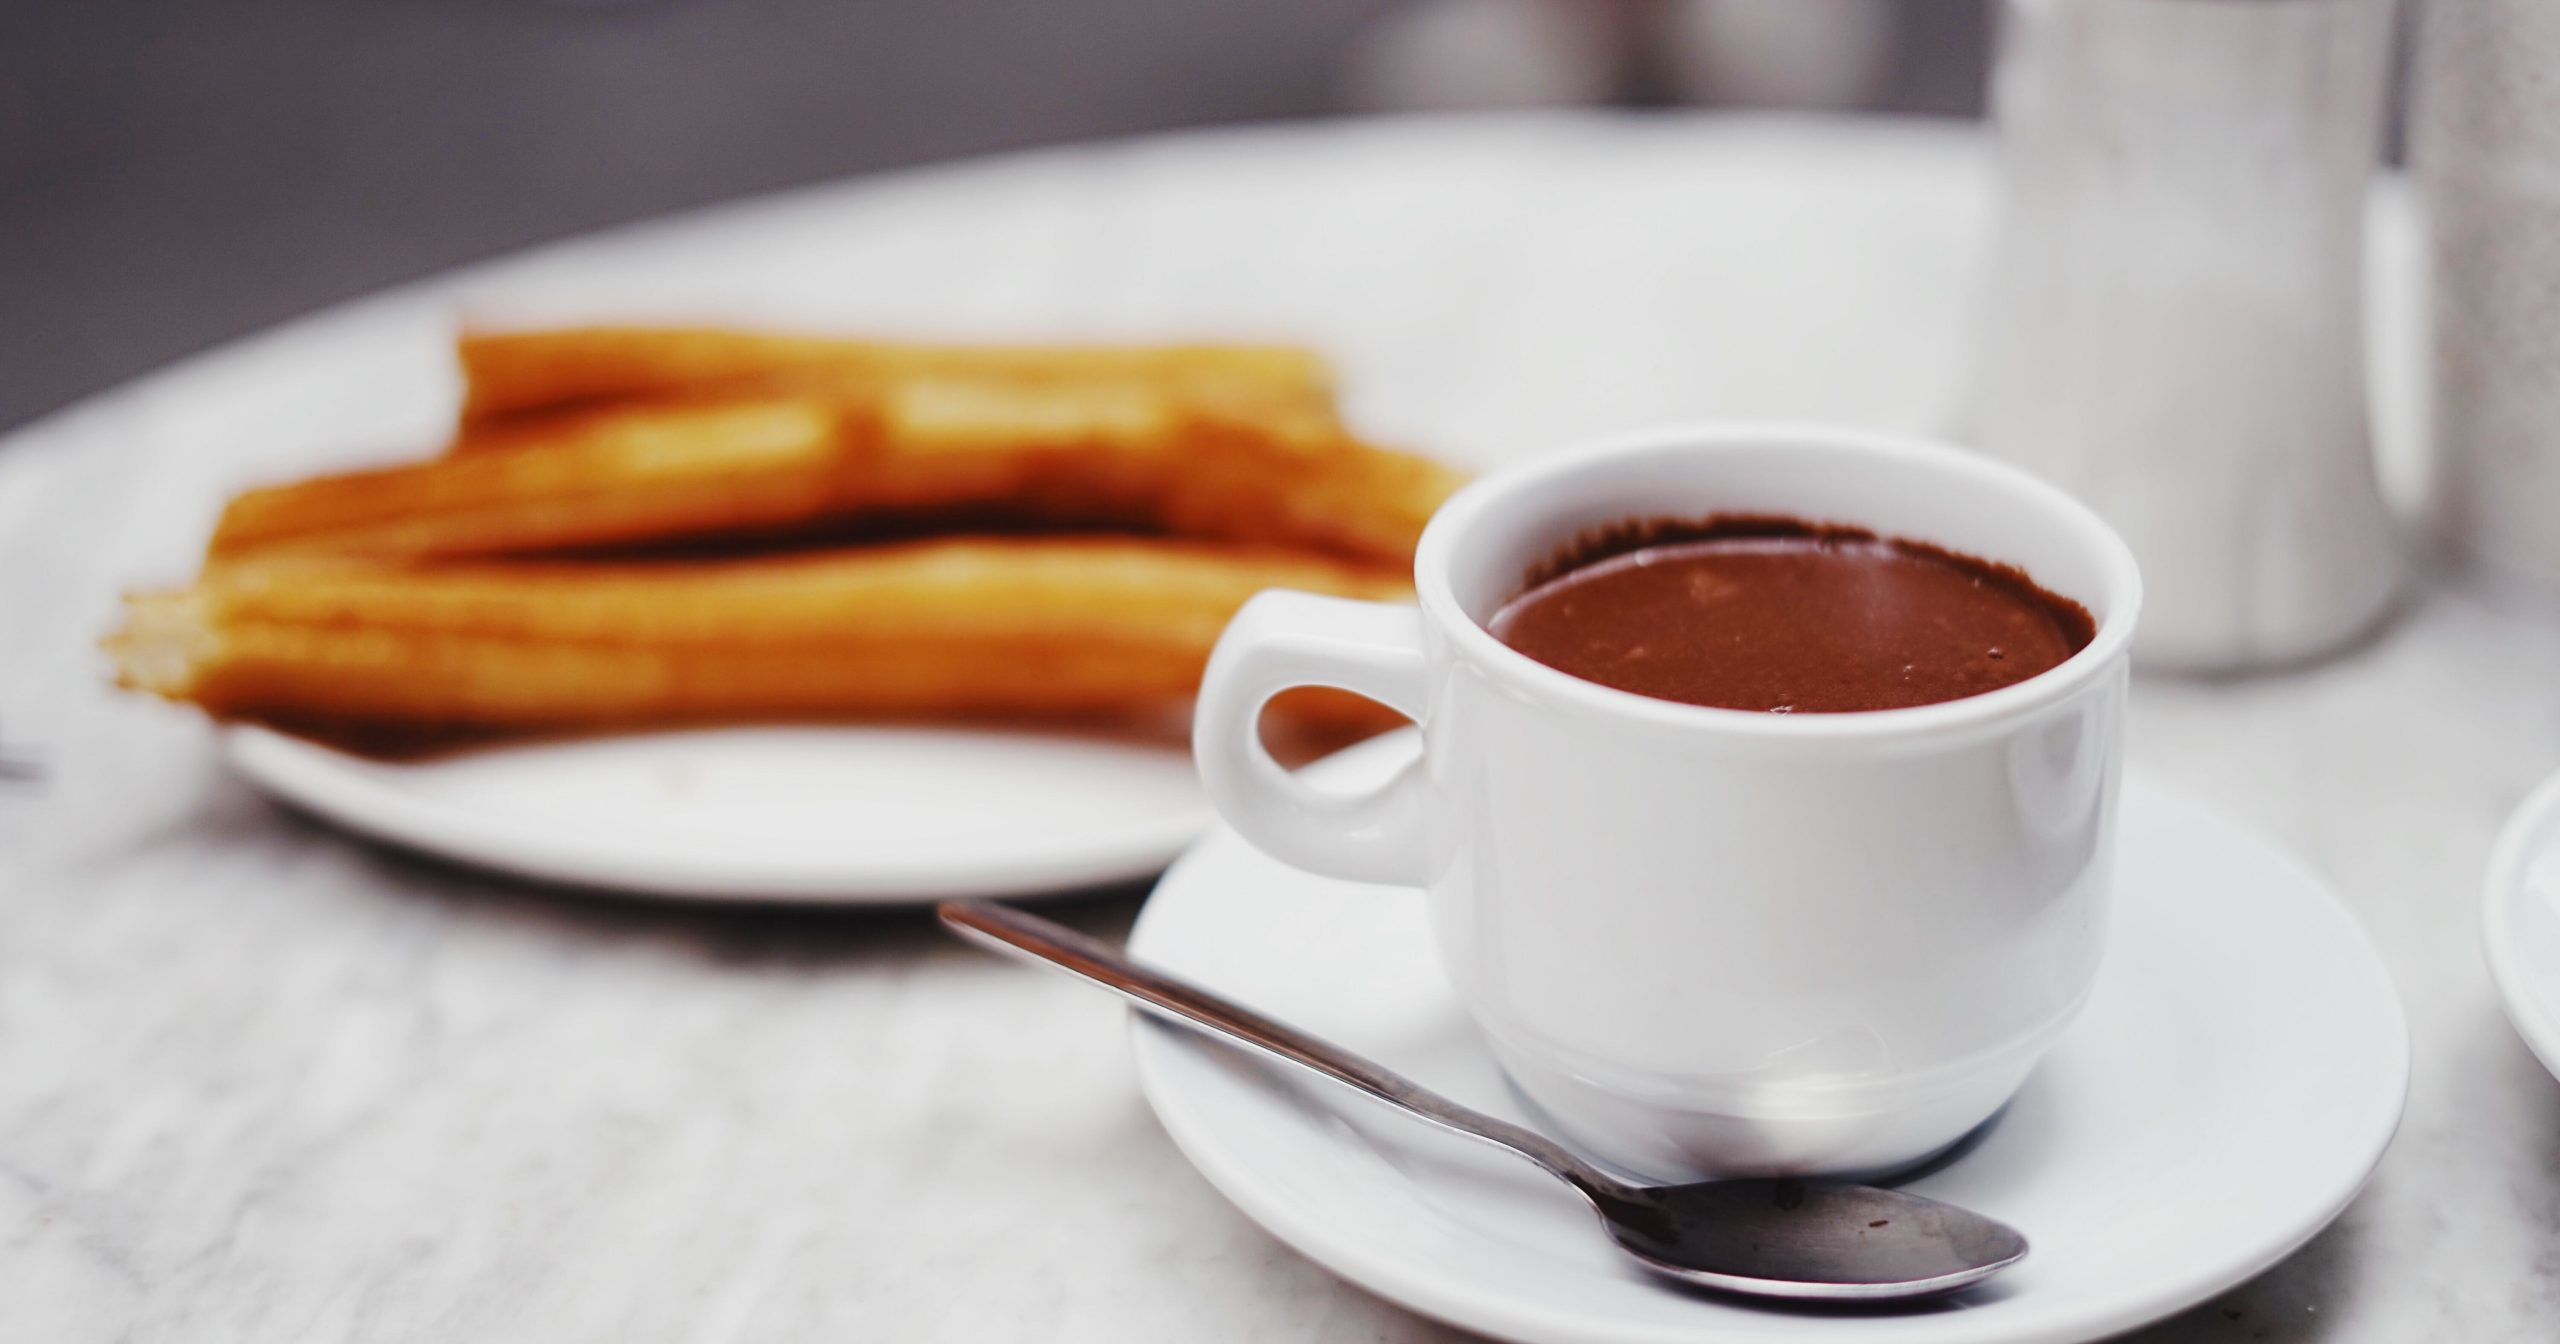 Churros on a white plate and chocolate sauce in a white mug